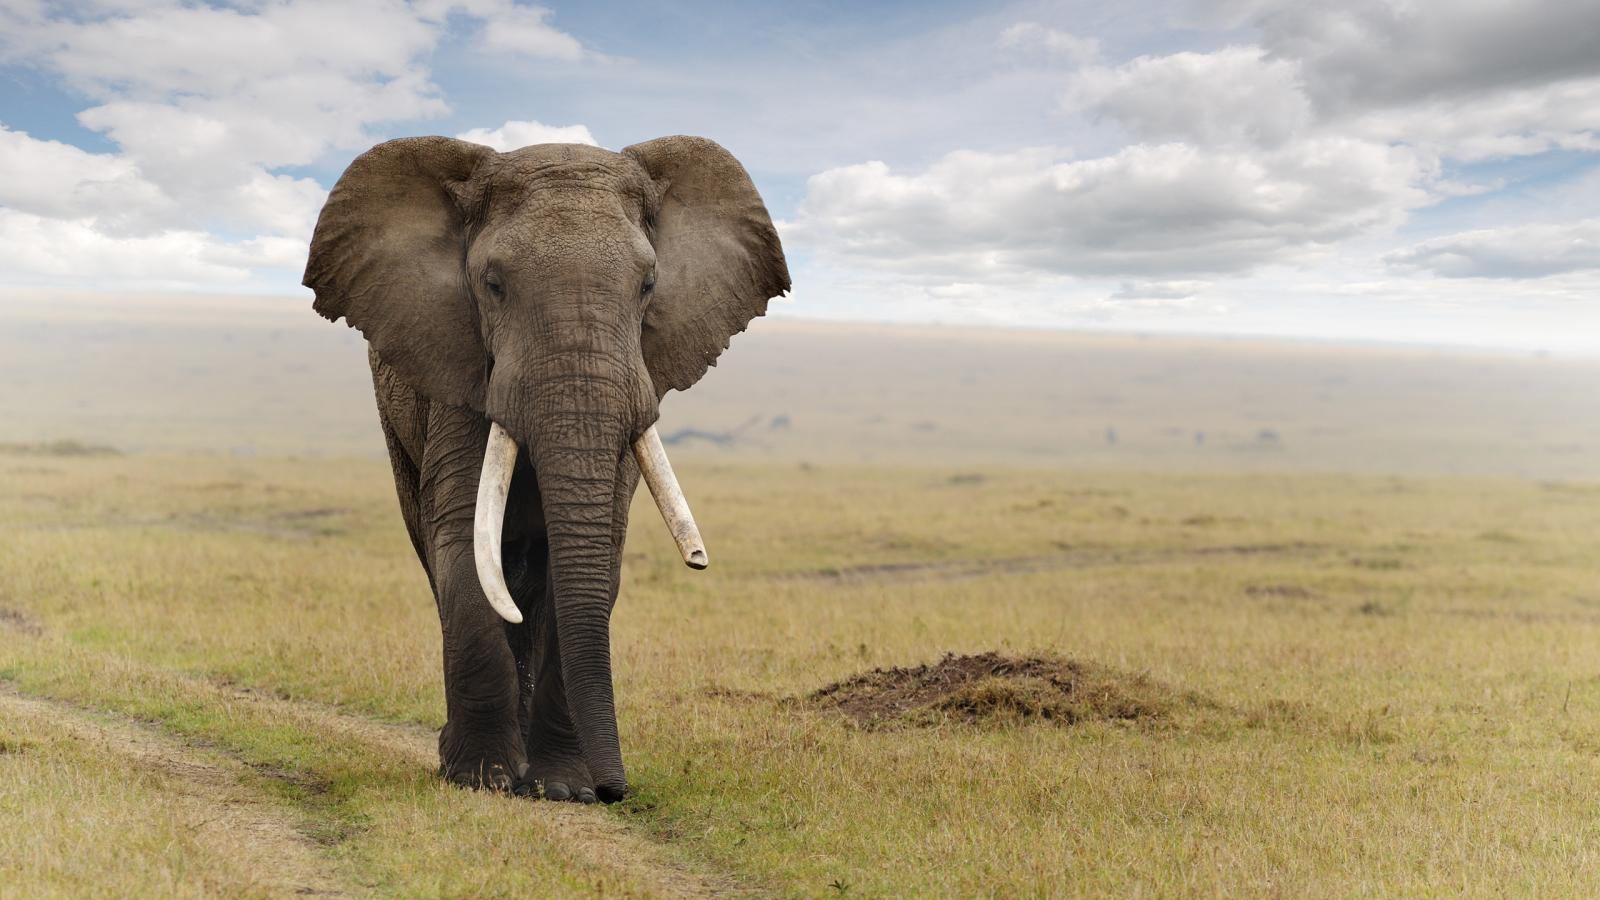 Big Cute Baby Wallpaper 20 High Resolution Elephant Pictures No 5 Big African